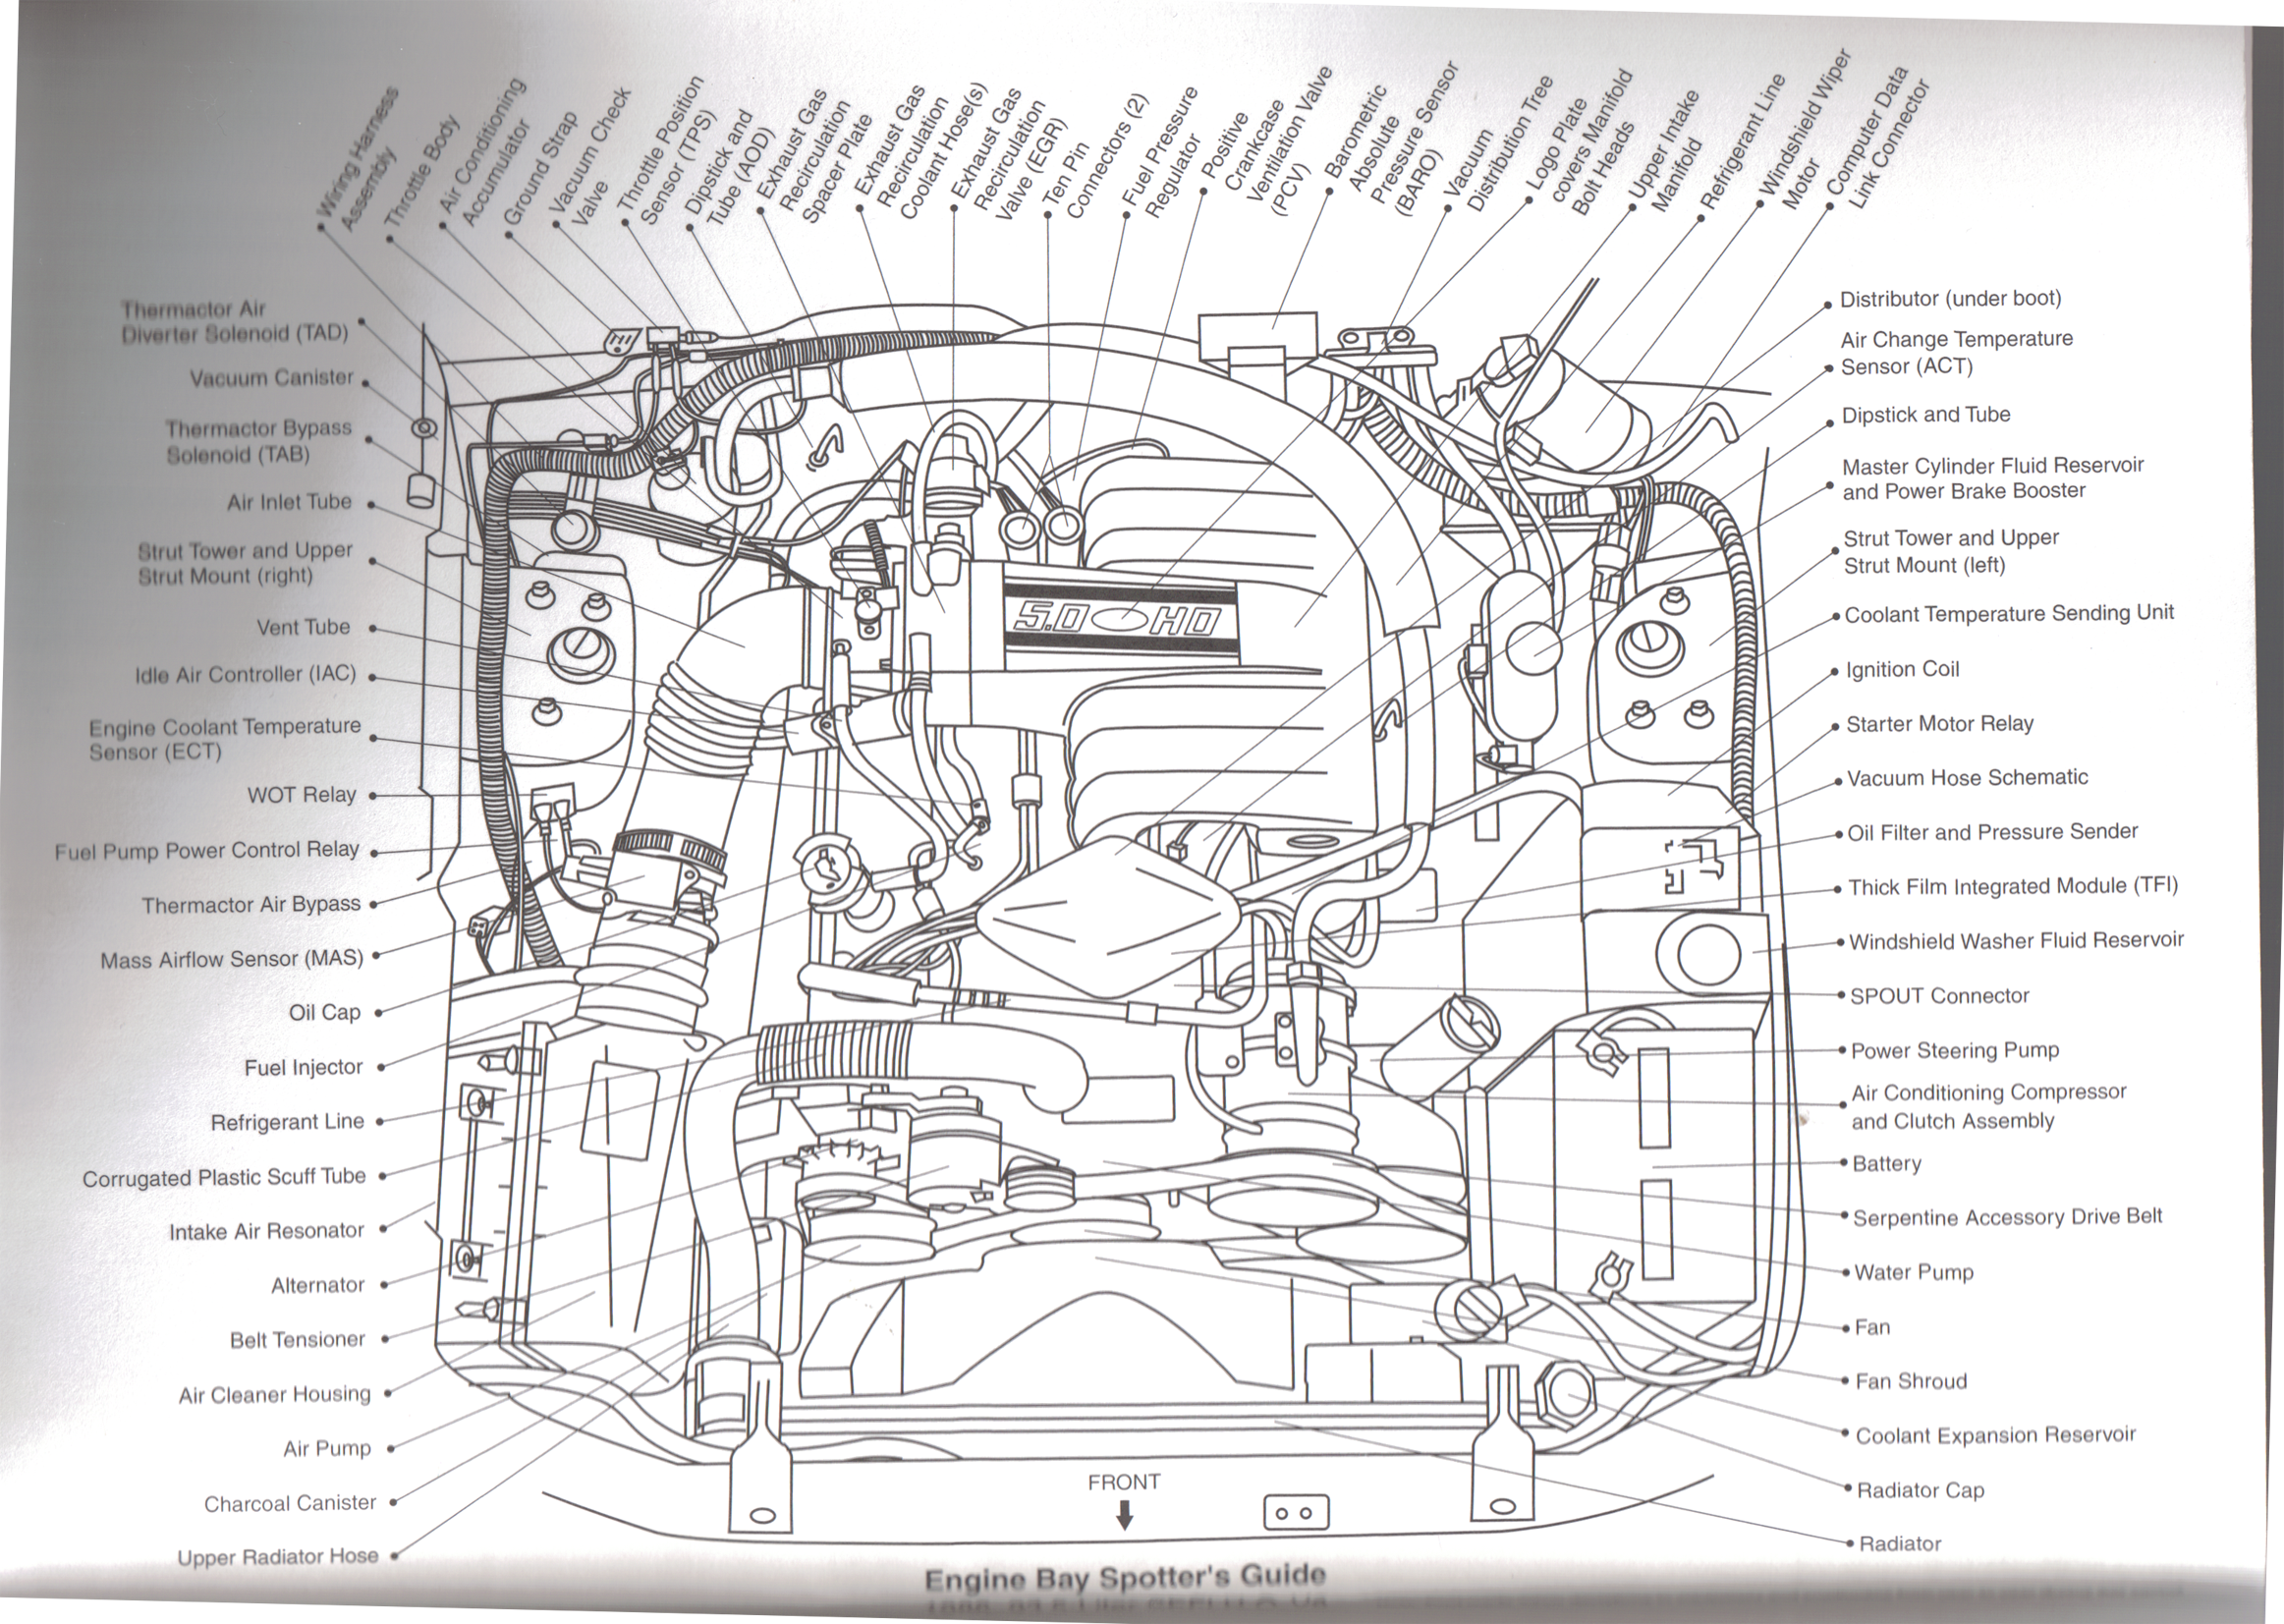 1987 1993 foxbody 5.0 sefi v8 engine part diagram everything you need to know about 1979 1993 foxbody mustangs 1993 mustang wiring diagram at bayanpartner.co